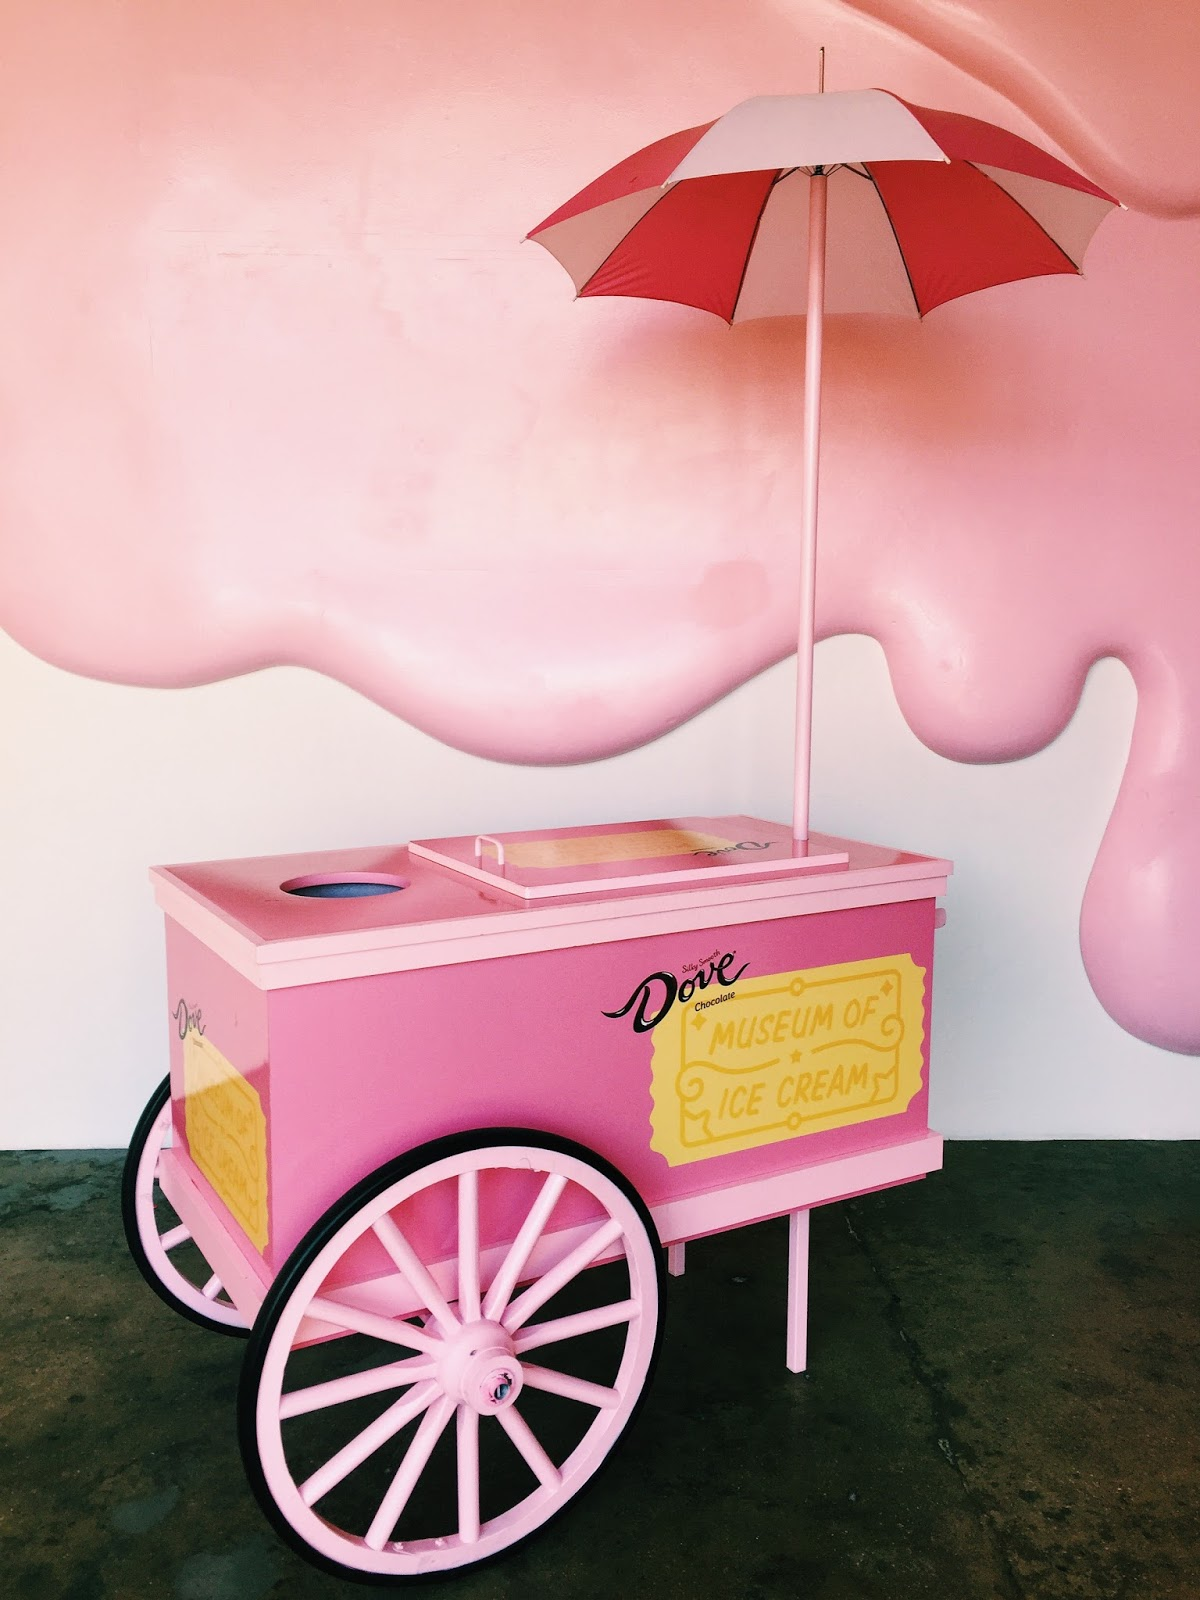 Umbrella Ice Cream Stand_Museum of Ice Cream Los Angeles_DTLA_Los Angeles Times_LA Blogger_ Travel Blogger_Pink Vintage